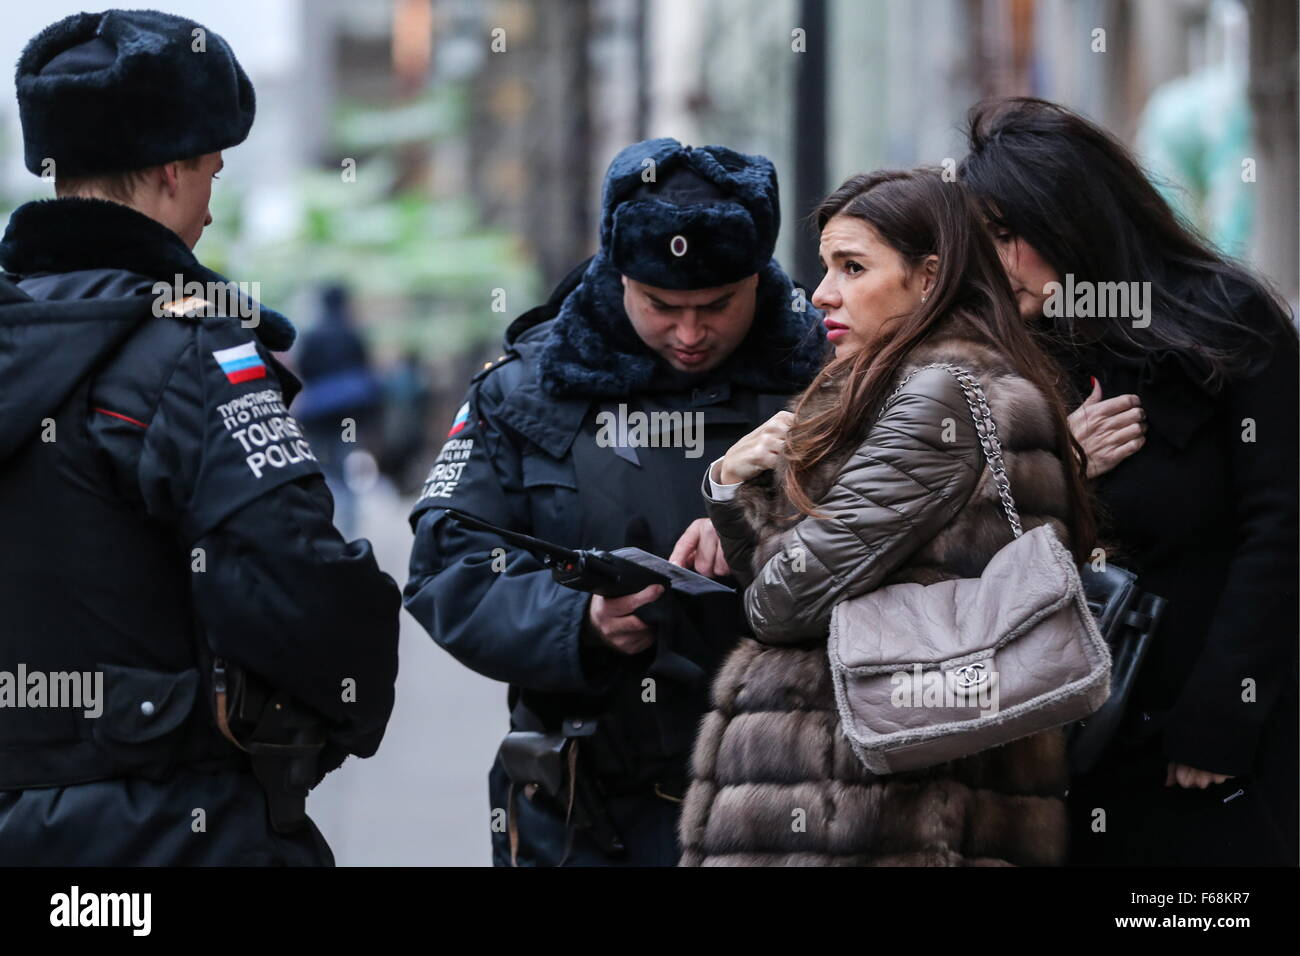 Tourist police in Russia: the purpose of creation, functions, reviews 66